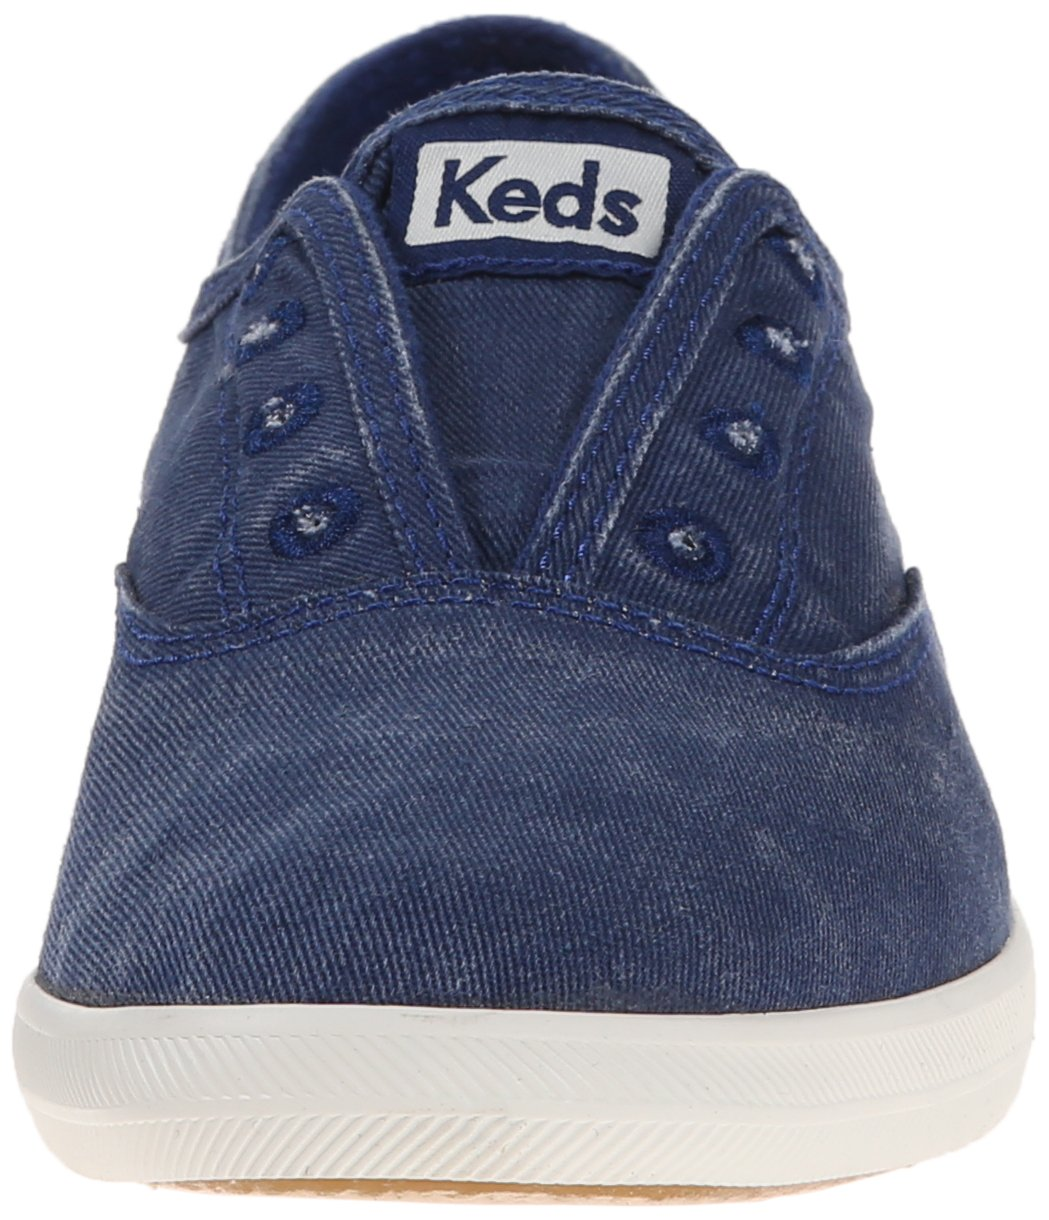 Keds Women's Chillax Washed Laceless Slip-On Sneaker B00MC3SAEG 7 B(M) US|Navy